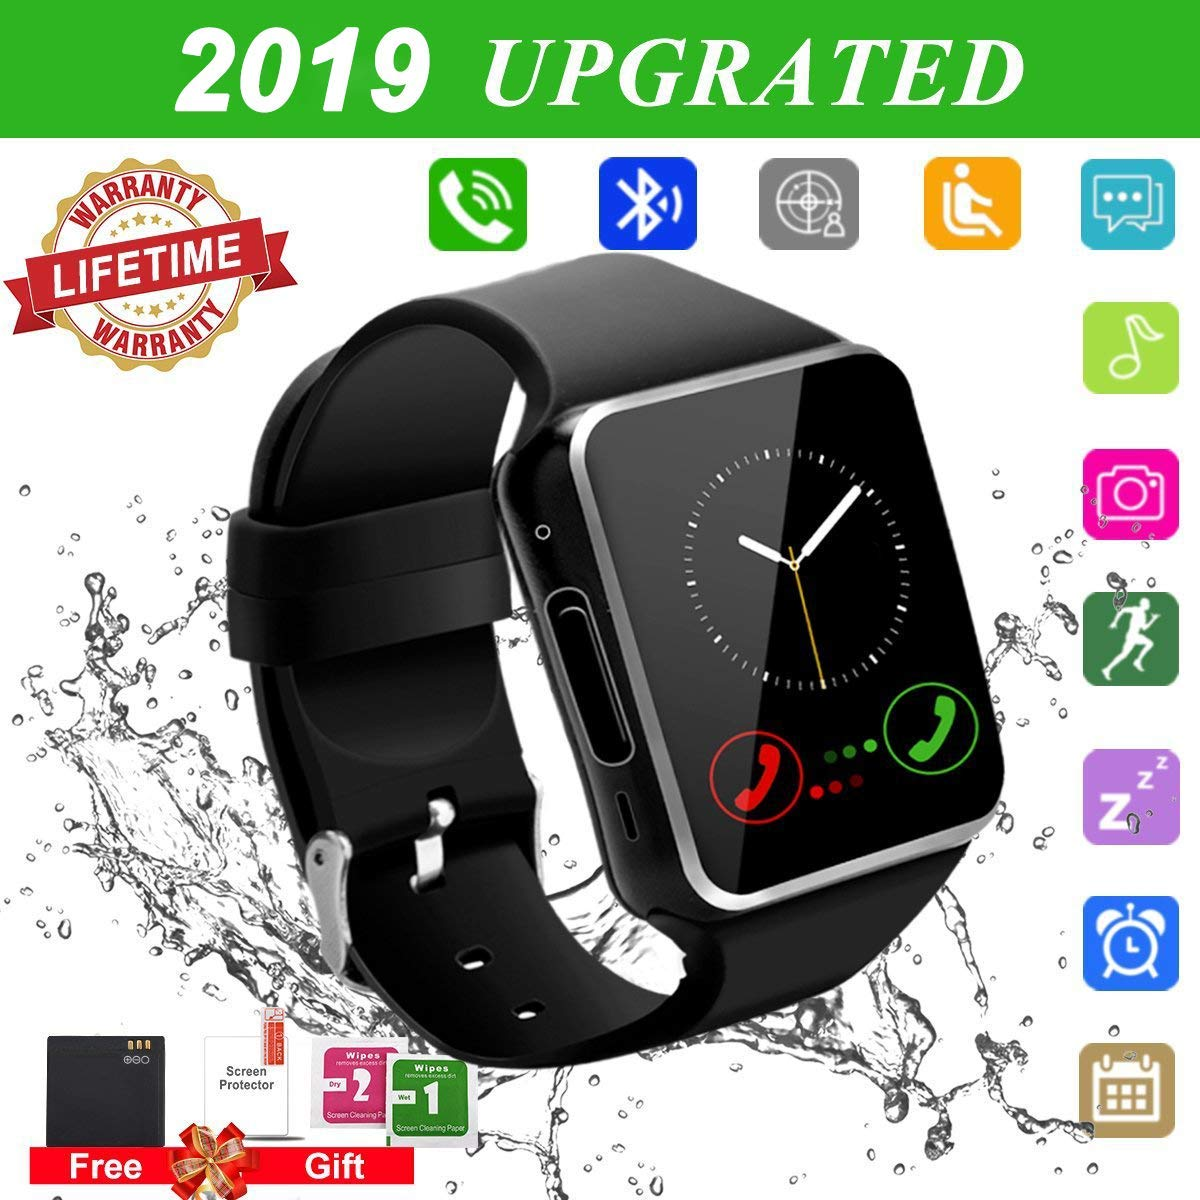 Smartwatch Android, Bluetooth Smart Watch, Smart Orologio Cellulare Android, Impermeabile Orologio Intelligente con Camera SIM Card Slot Per Phone X XS XR 8 7 6 6s 5 ios Samsung Huawei Uomo Donna product image